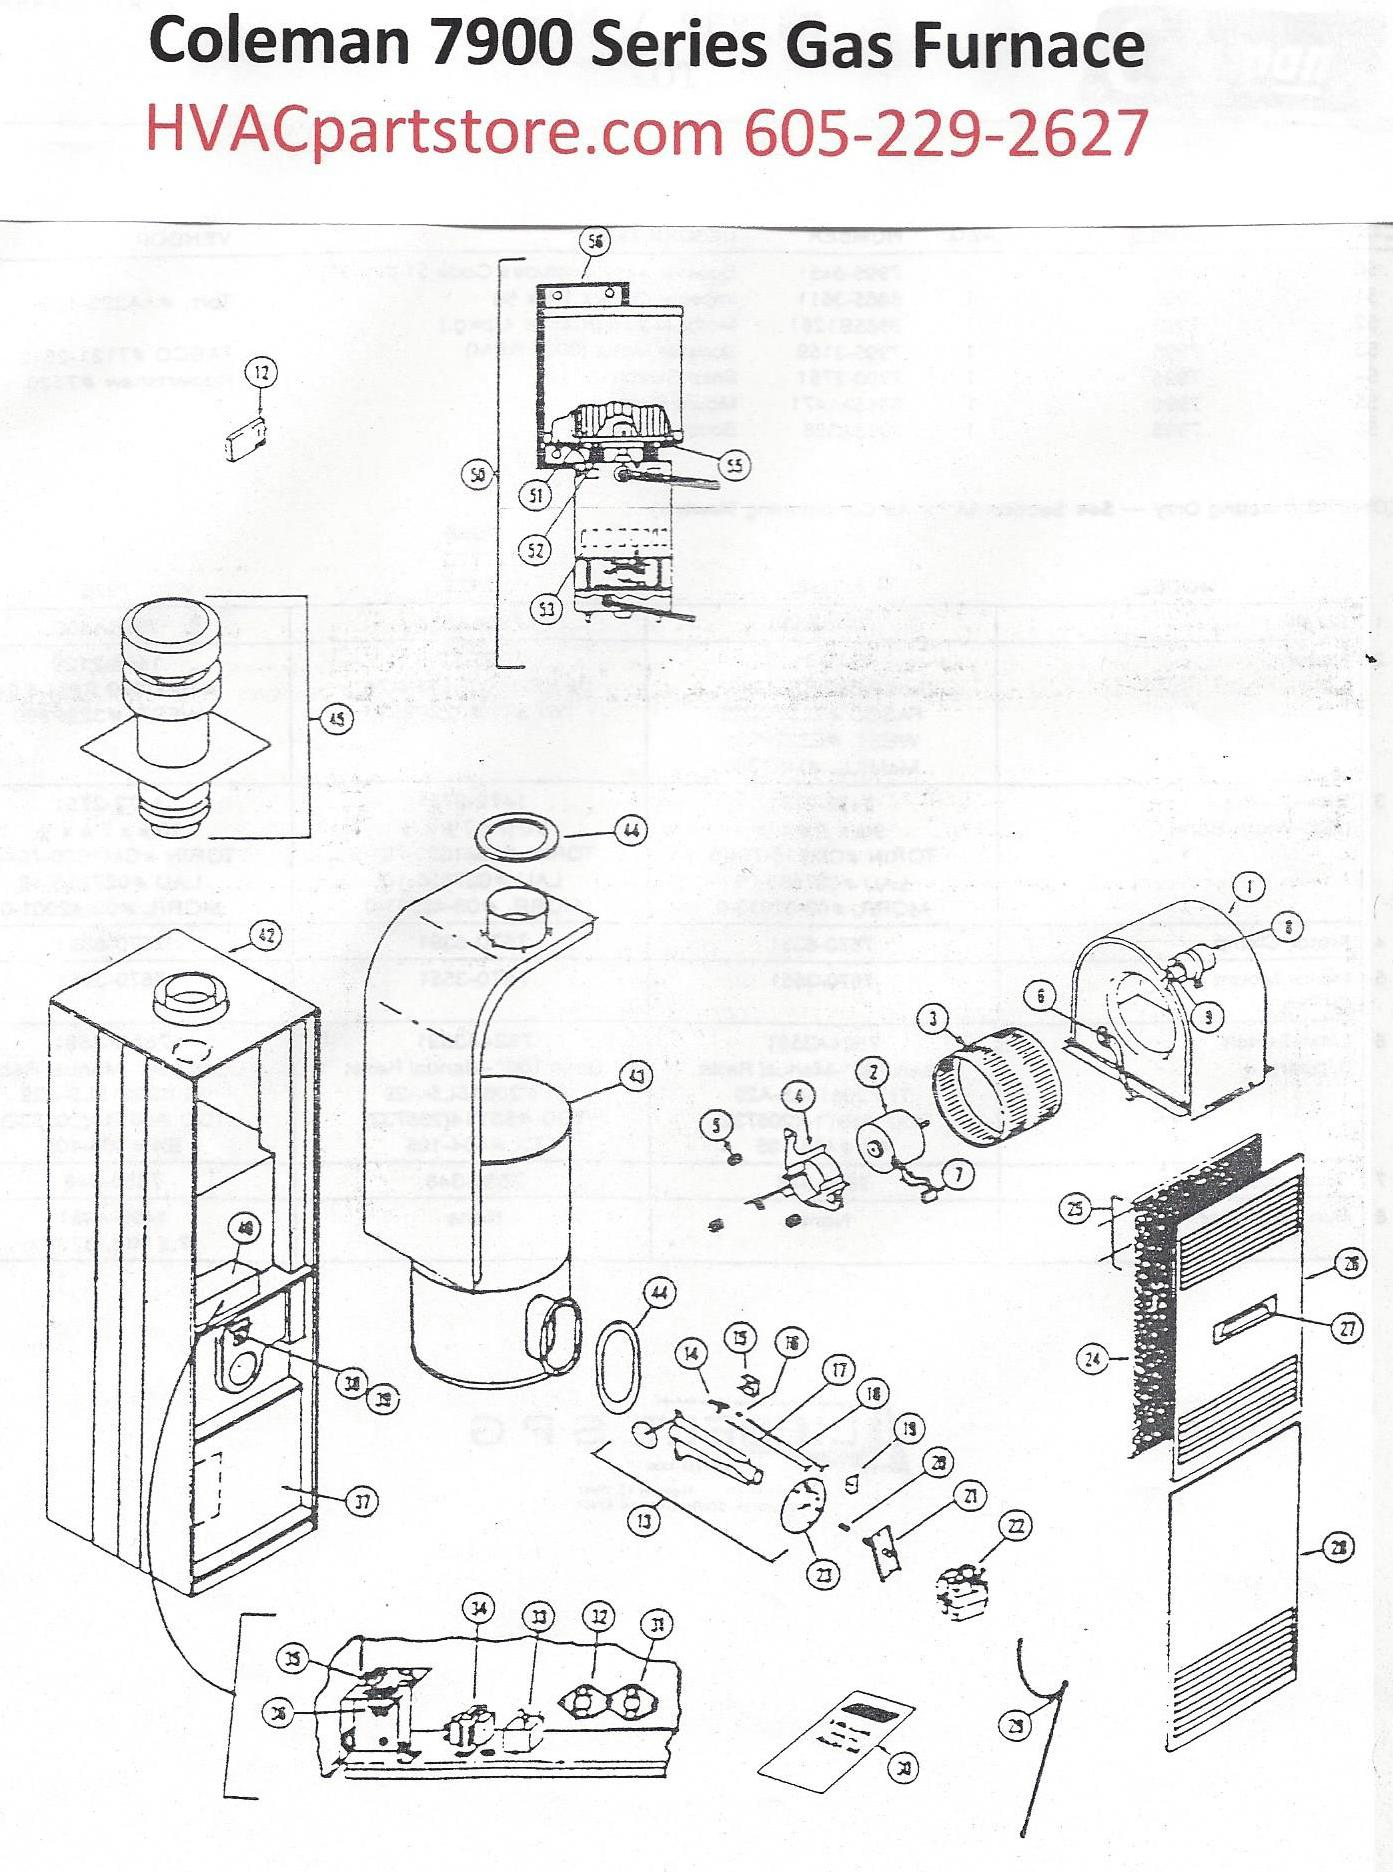 wiring diagram for coleman furnace the wiring diagram 7956 856 coleman gas furnace parts hvacpartstore wiring diagram